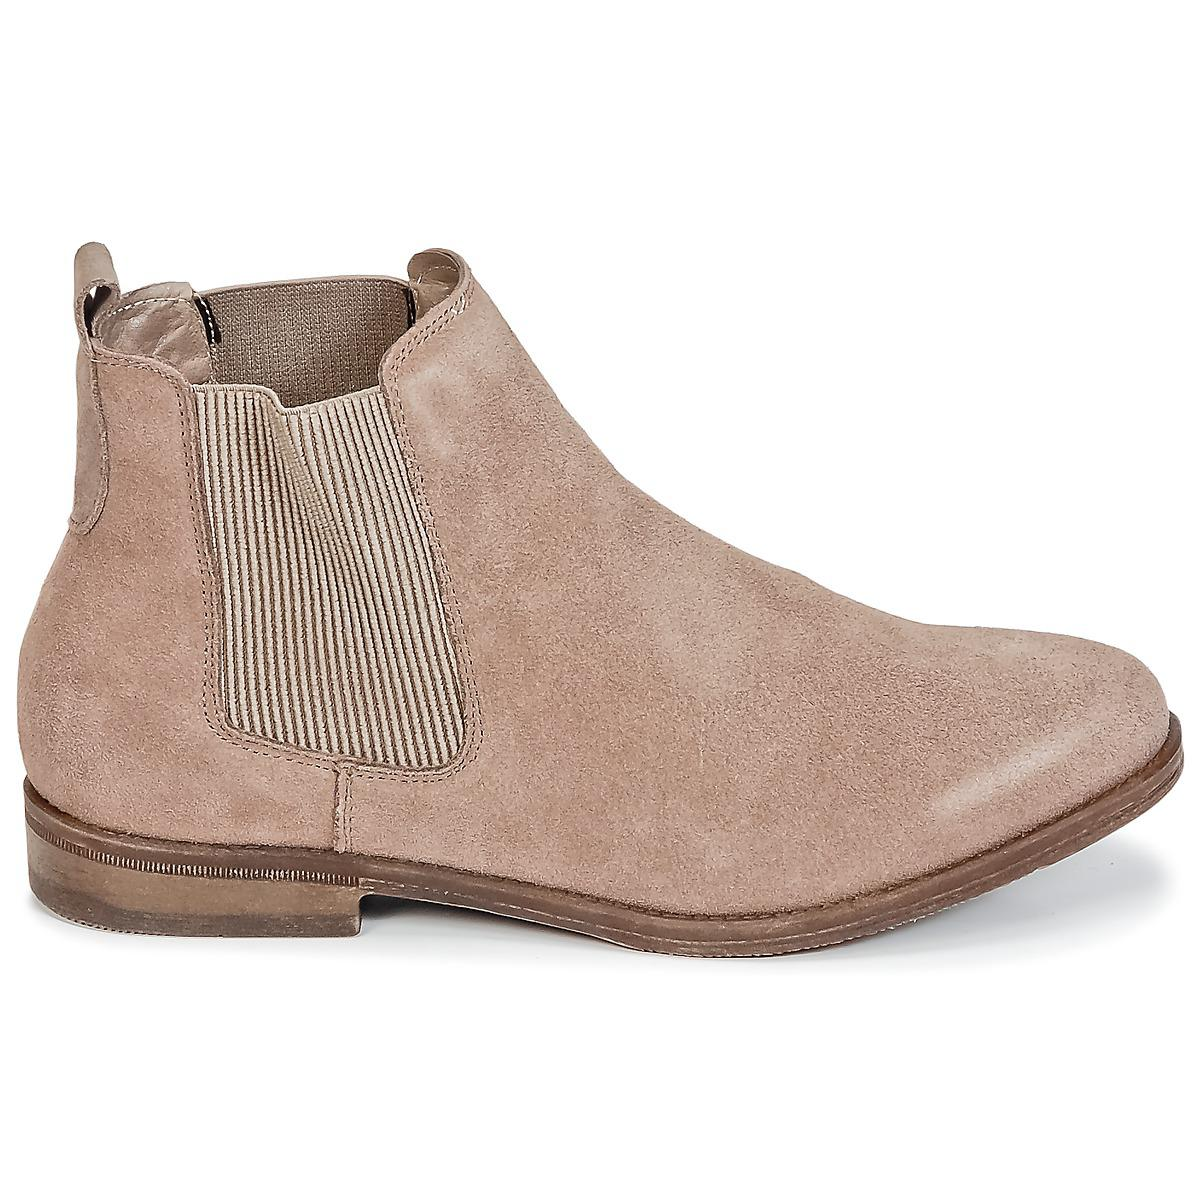 Wildflower Leather Ease Women's Mid Boots In Beige in Natural